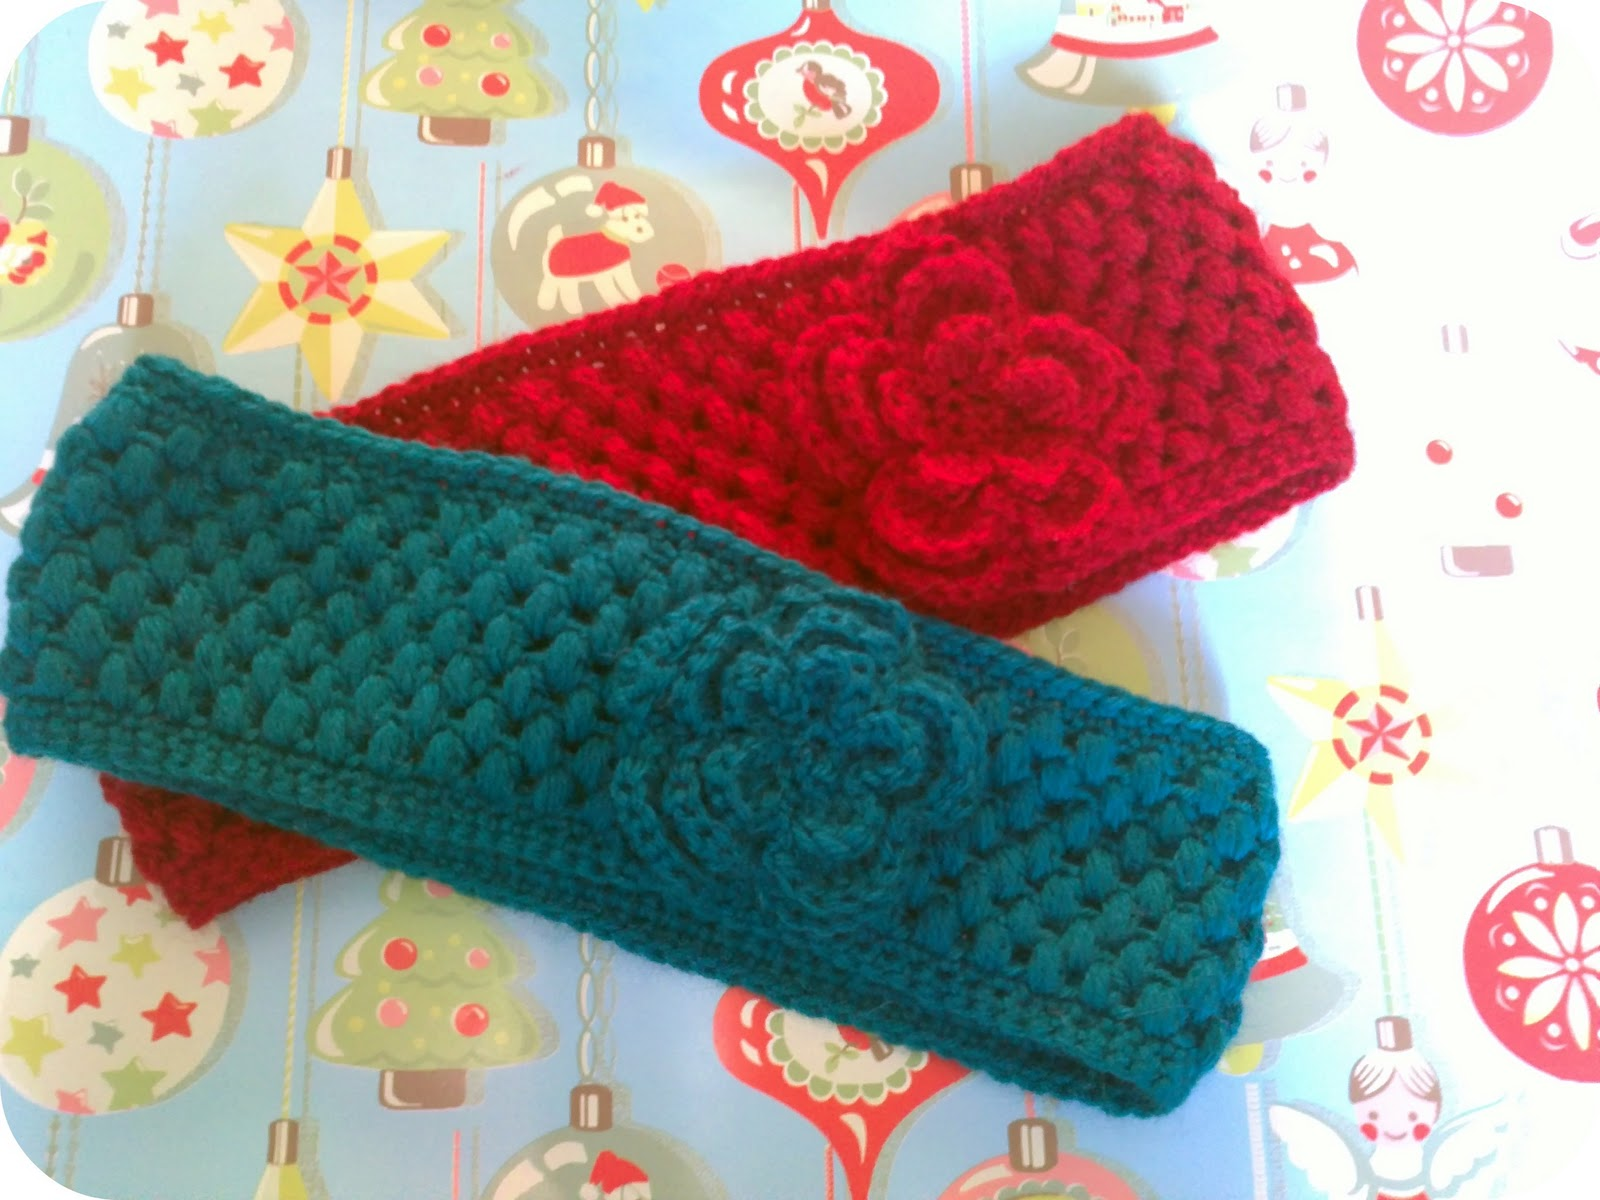 Crochet Flower Ear Warmer Tutorial : FREE PATTERN FOR CROCHETED EAR WARMER ? Easy Crochet Patterns